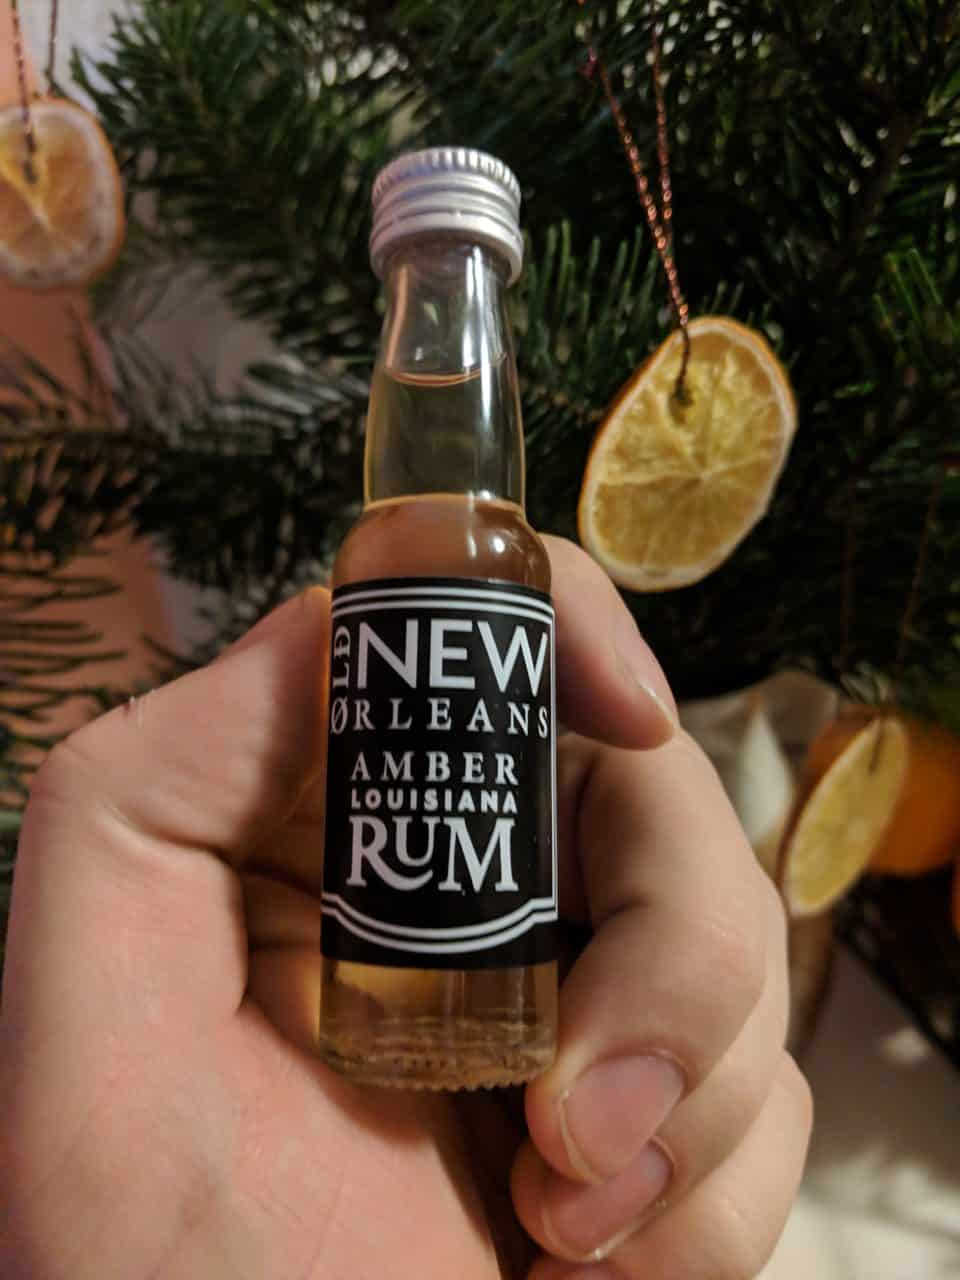 Old New Orleans Amber Louisiana Rum